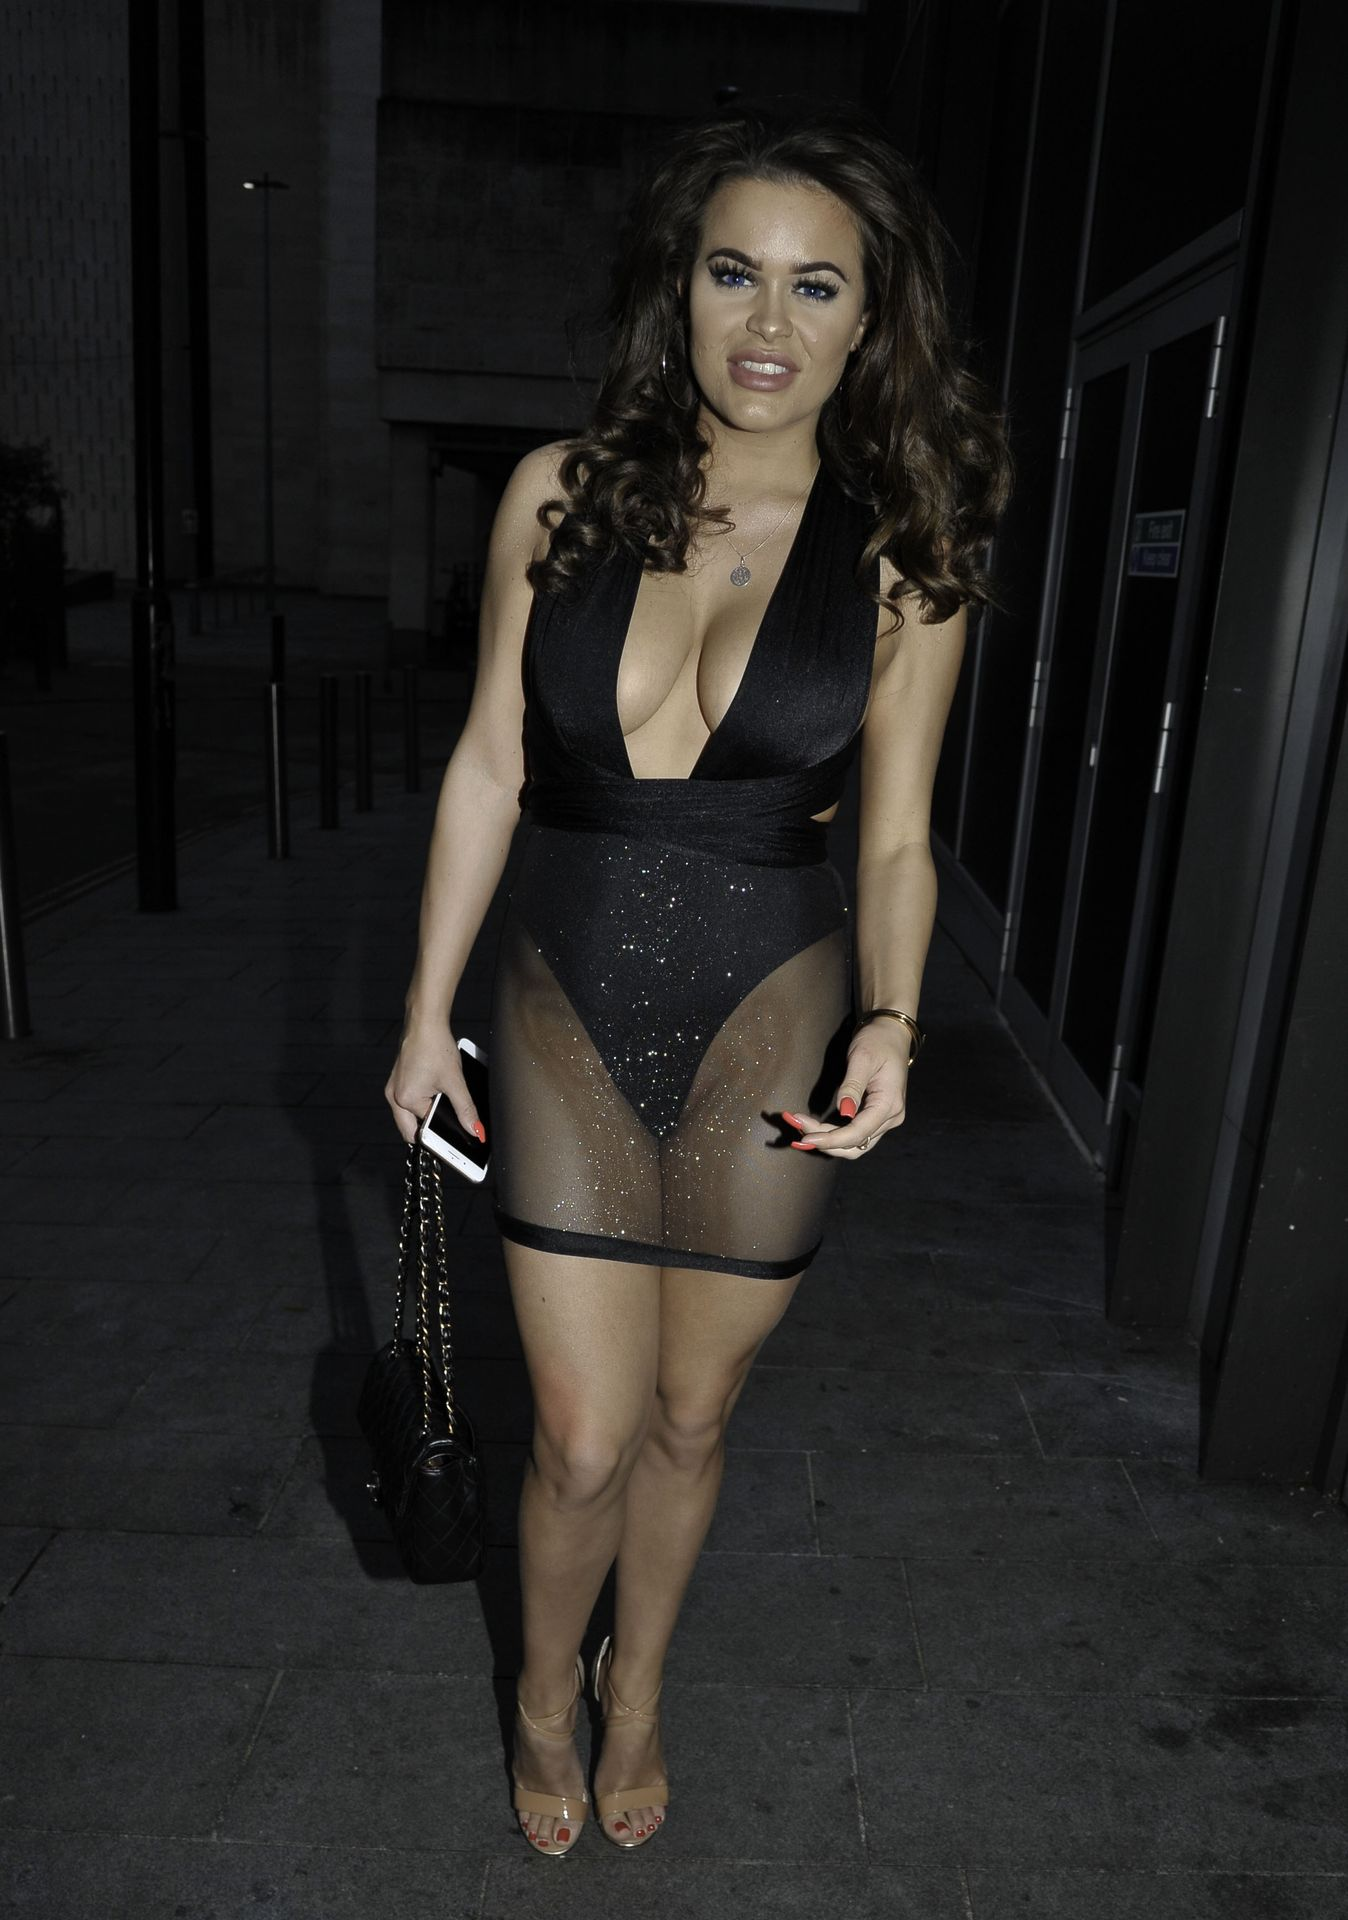 Rhianne Saxby & Sarah Longbottom Look Hot In Manchester 0023